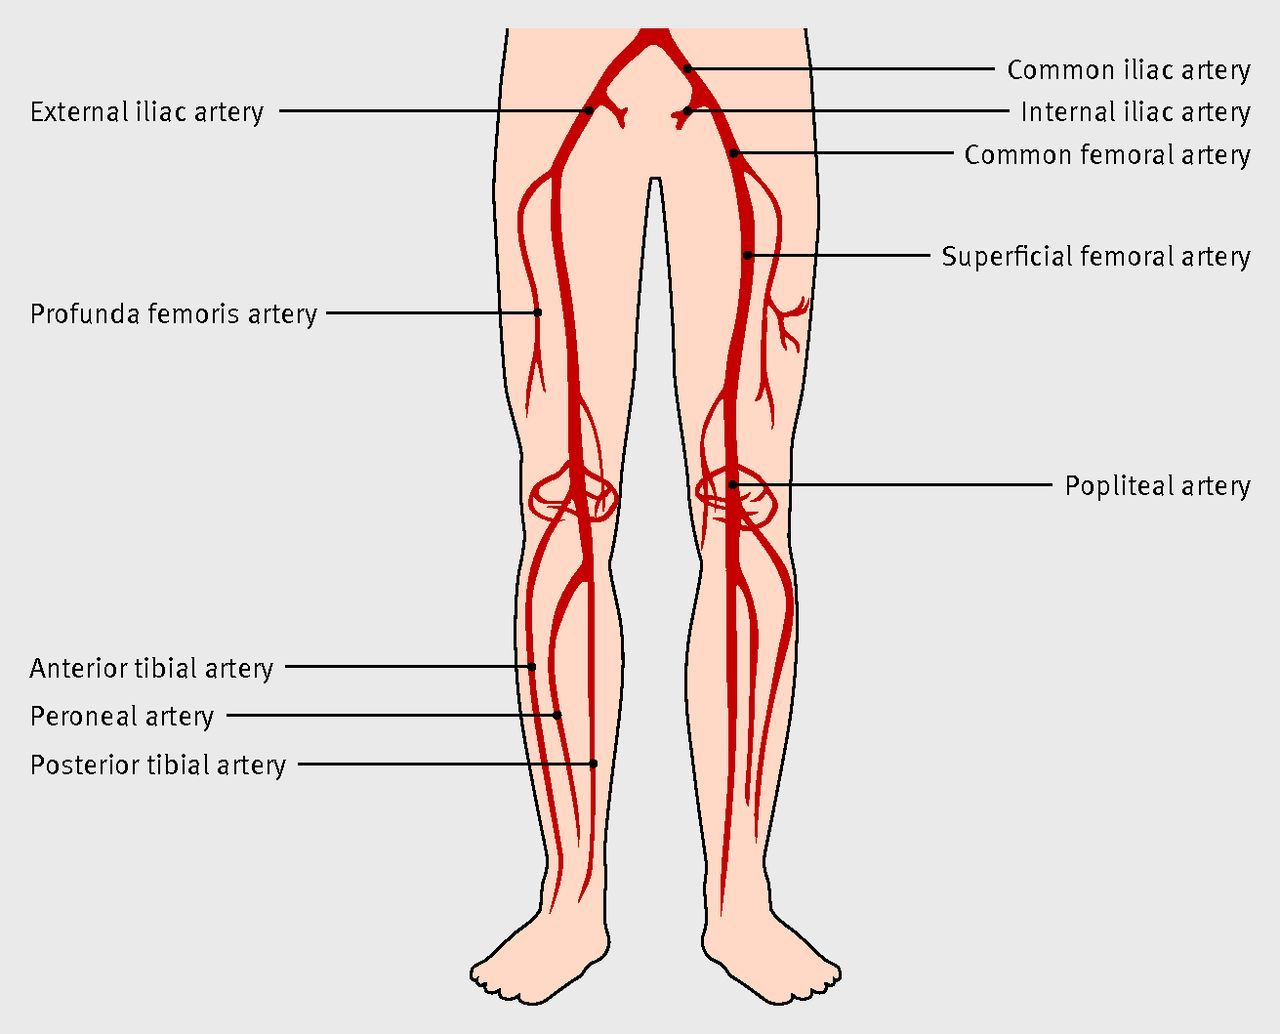 Pin By Casey Emge On Pa C Pinterest Medical Anatomy And